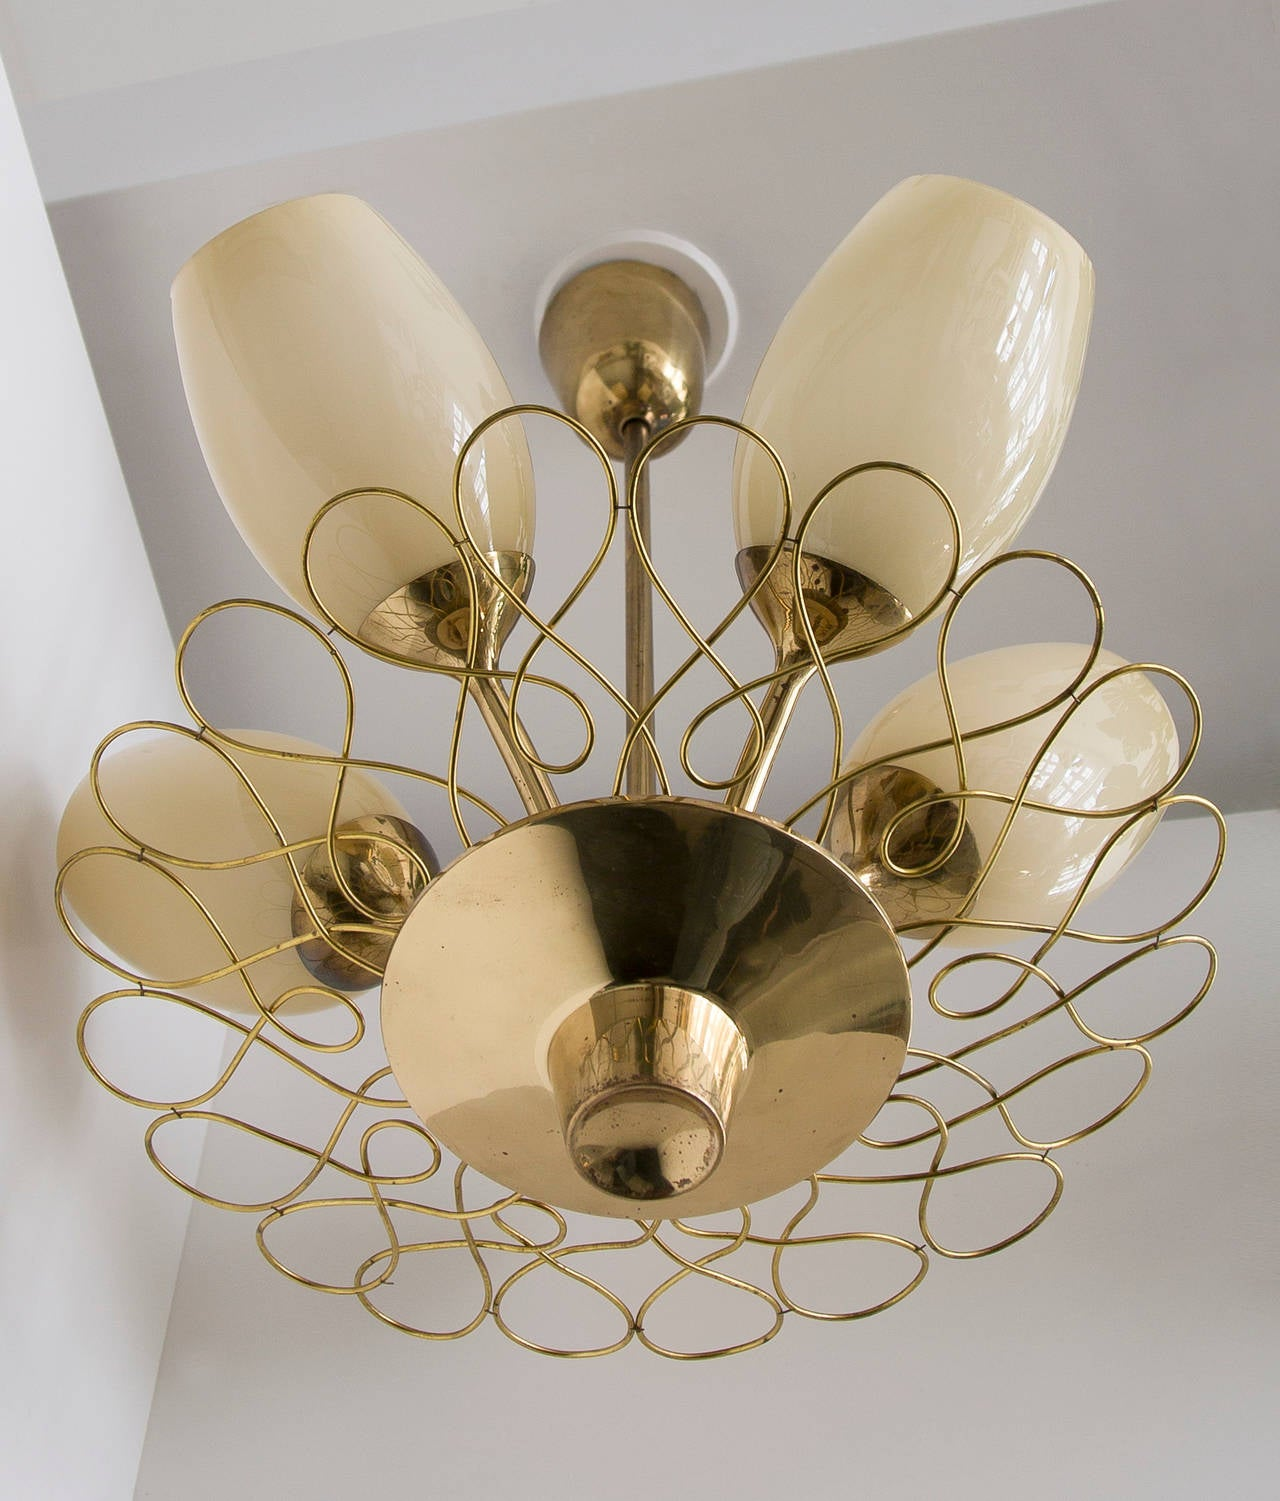 Hand-Crafted Paavo Tynell Ceiling Lamp Taito Oy For Sale